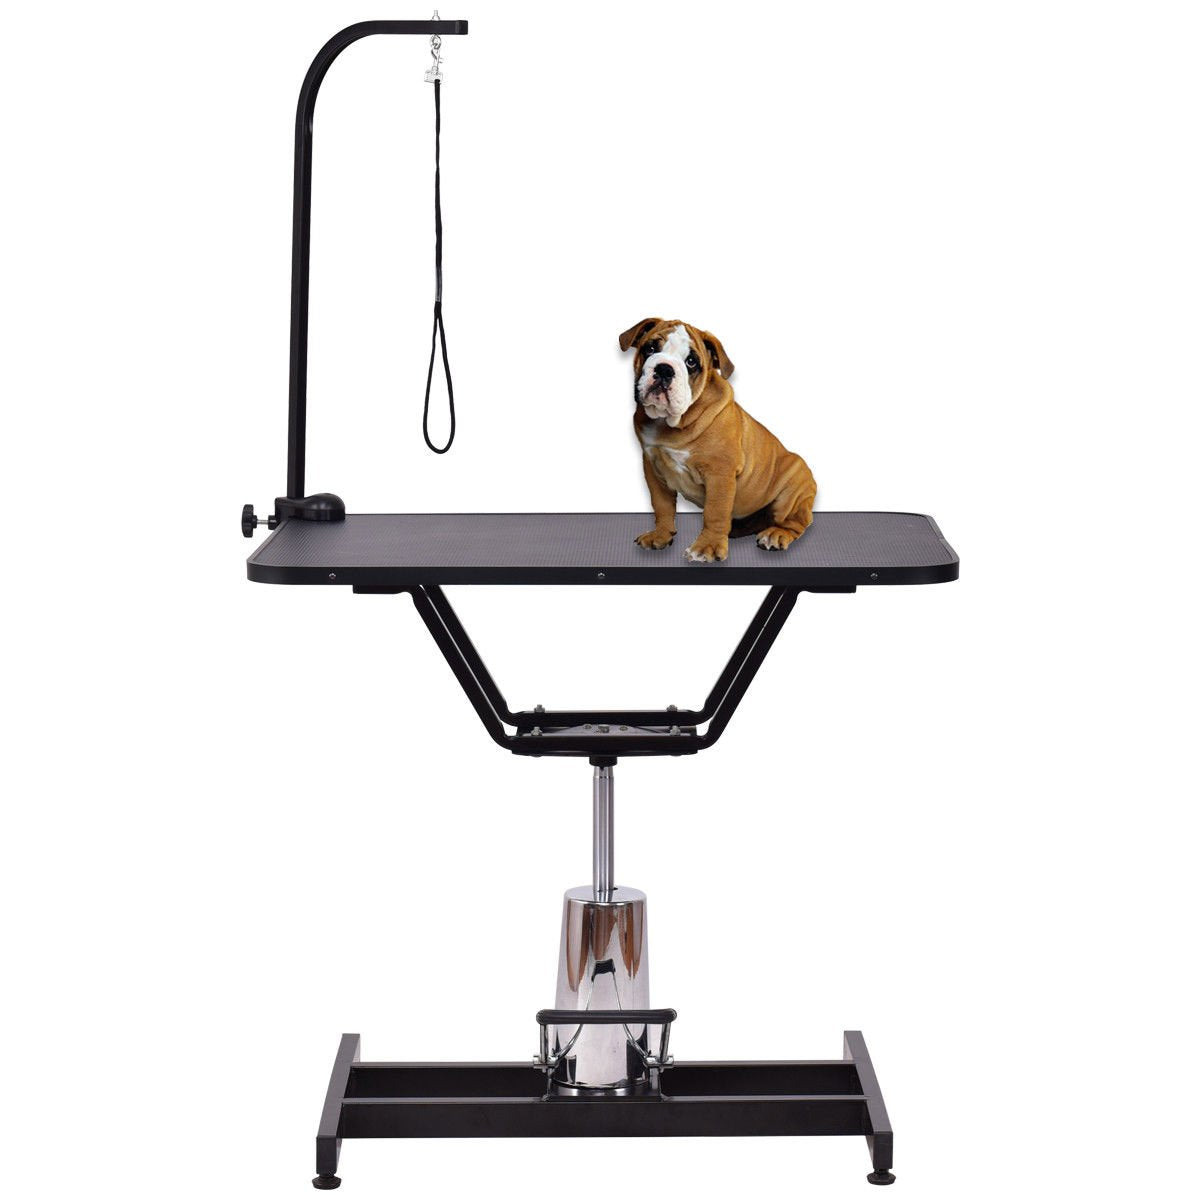 "Pet Grooming Table Hydraulic Adjustable 36"" x 24"" x 1"""